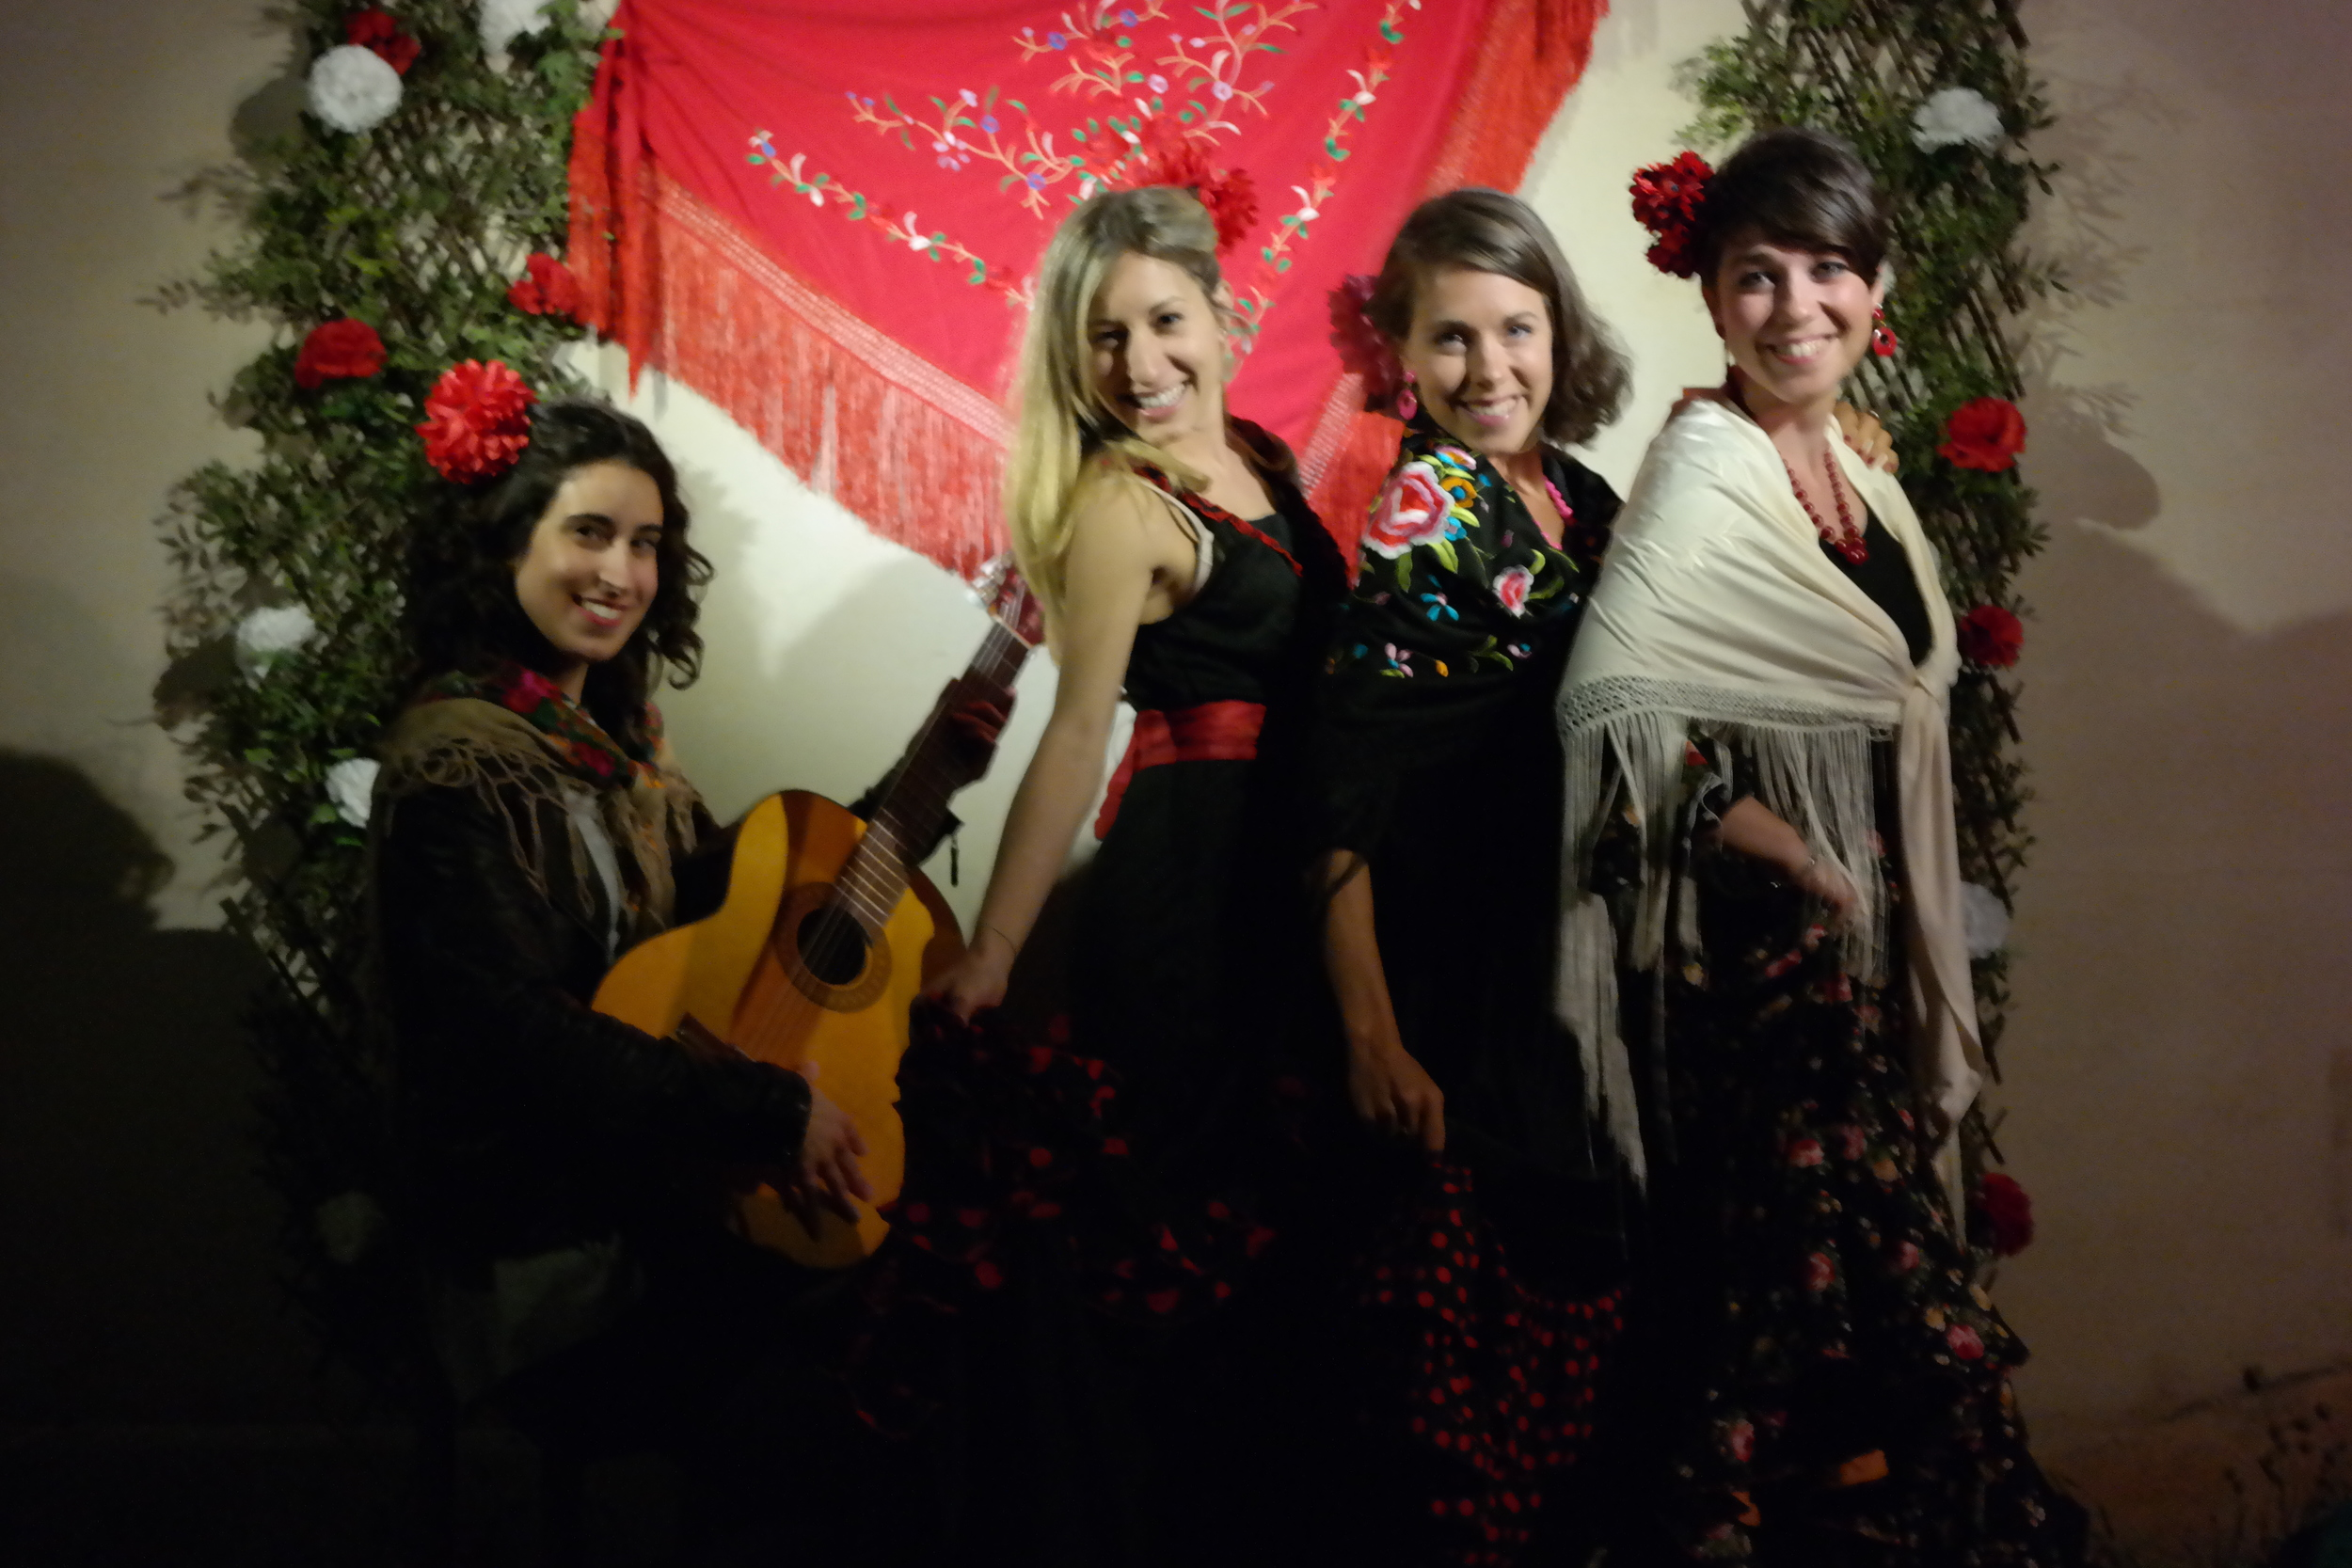 Saturday night feeling deluxe when Mallorcan friends dress up for Feria de Abril!